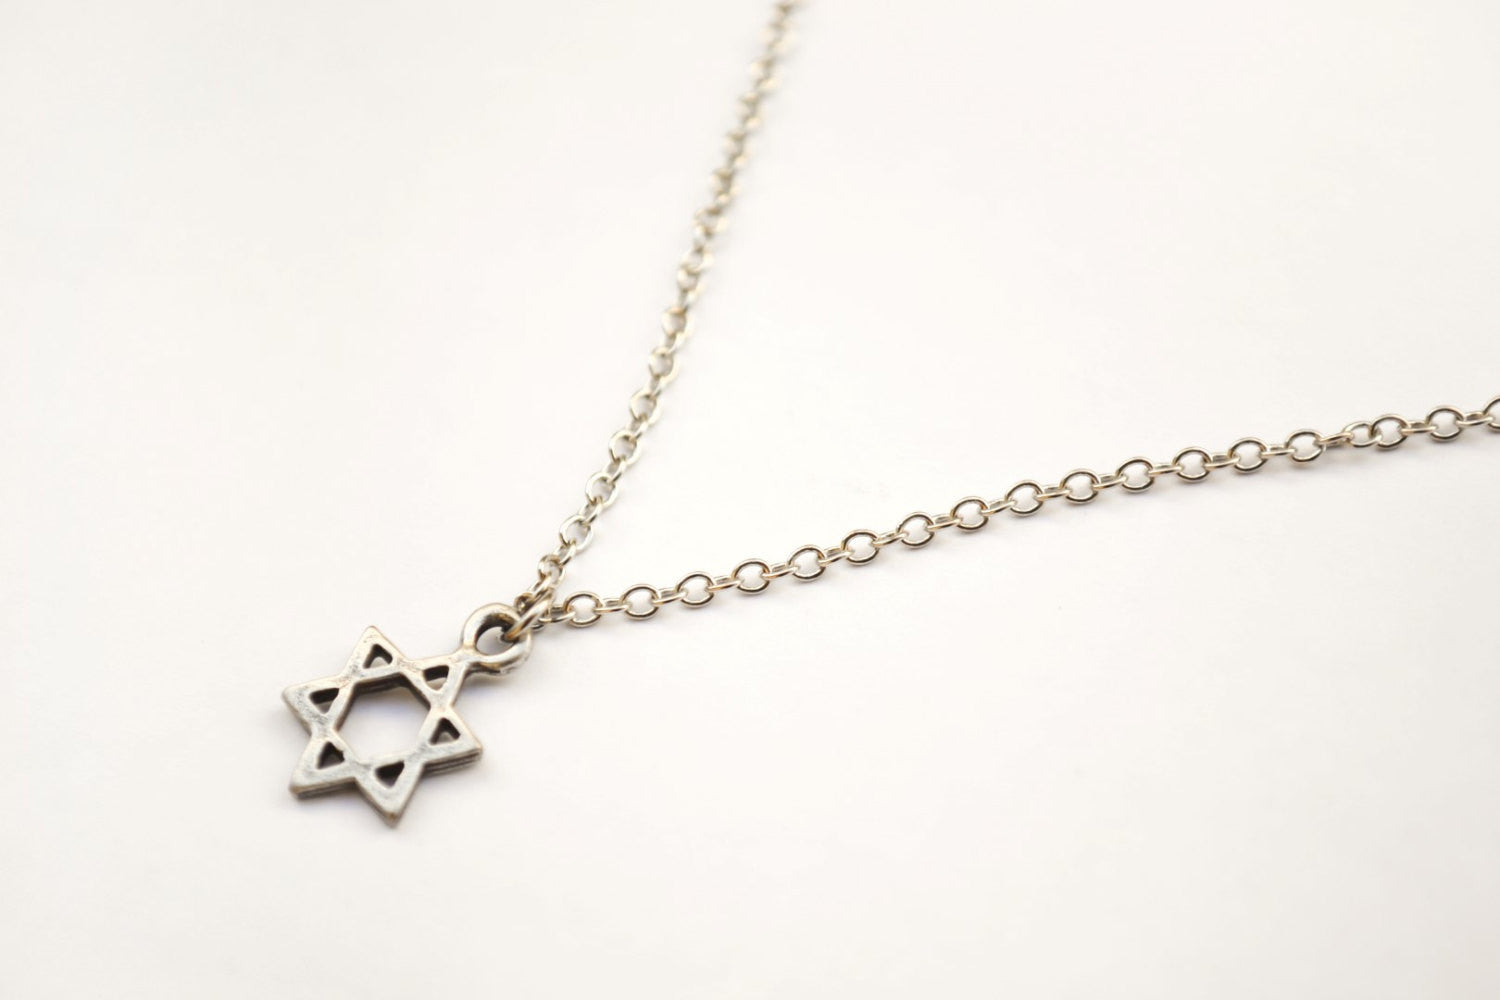 necklace necklaces diamond of magen david star jewelry chrome products pendant enlarged hearts